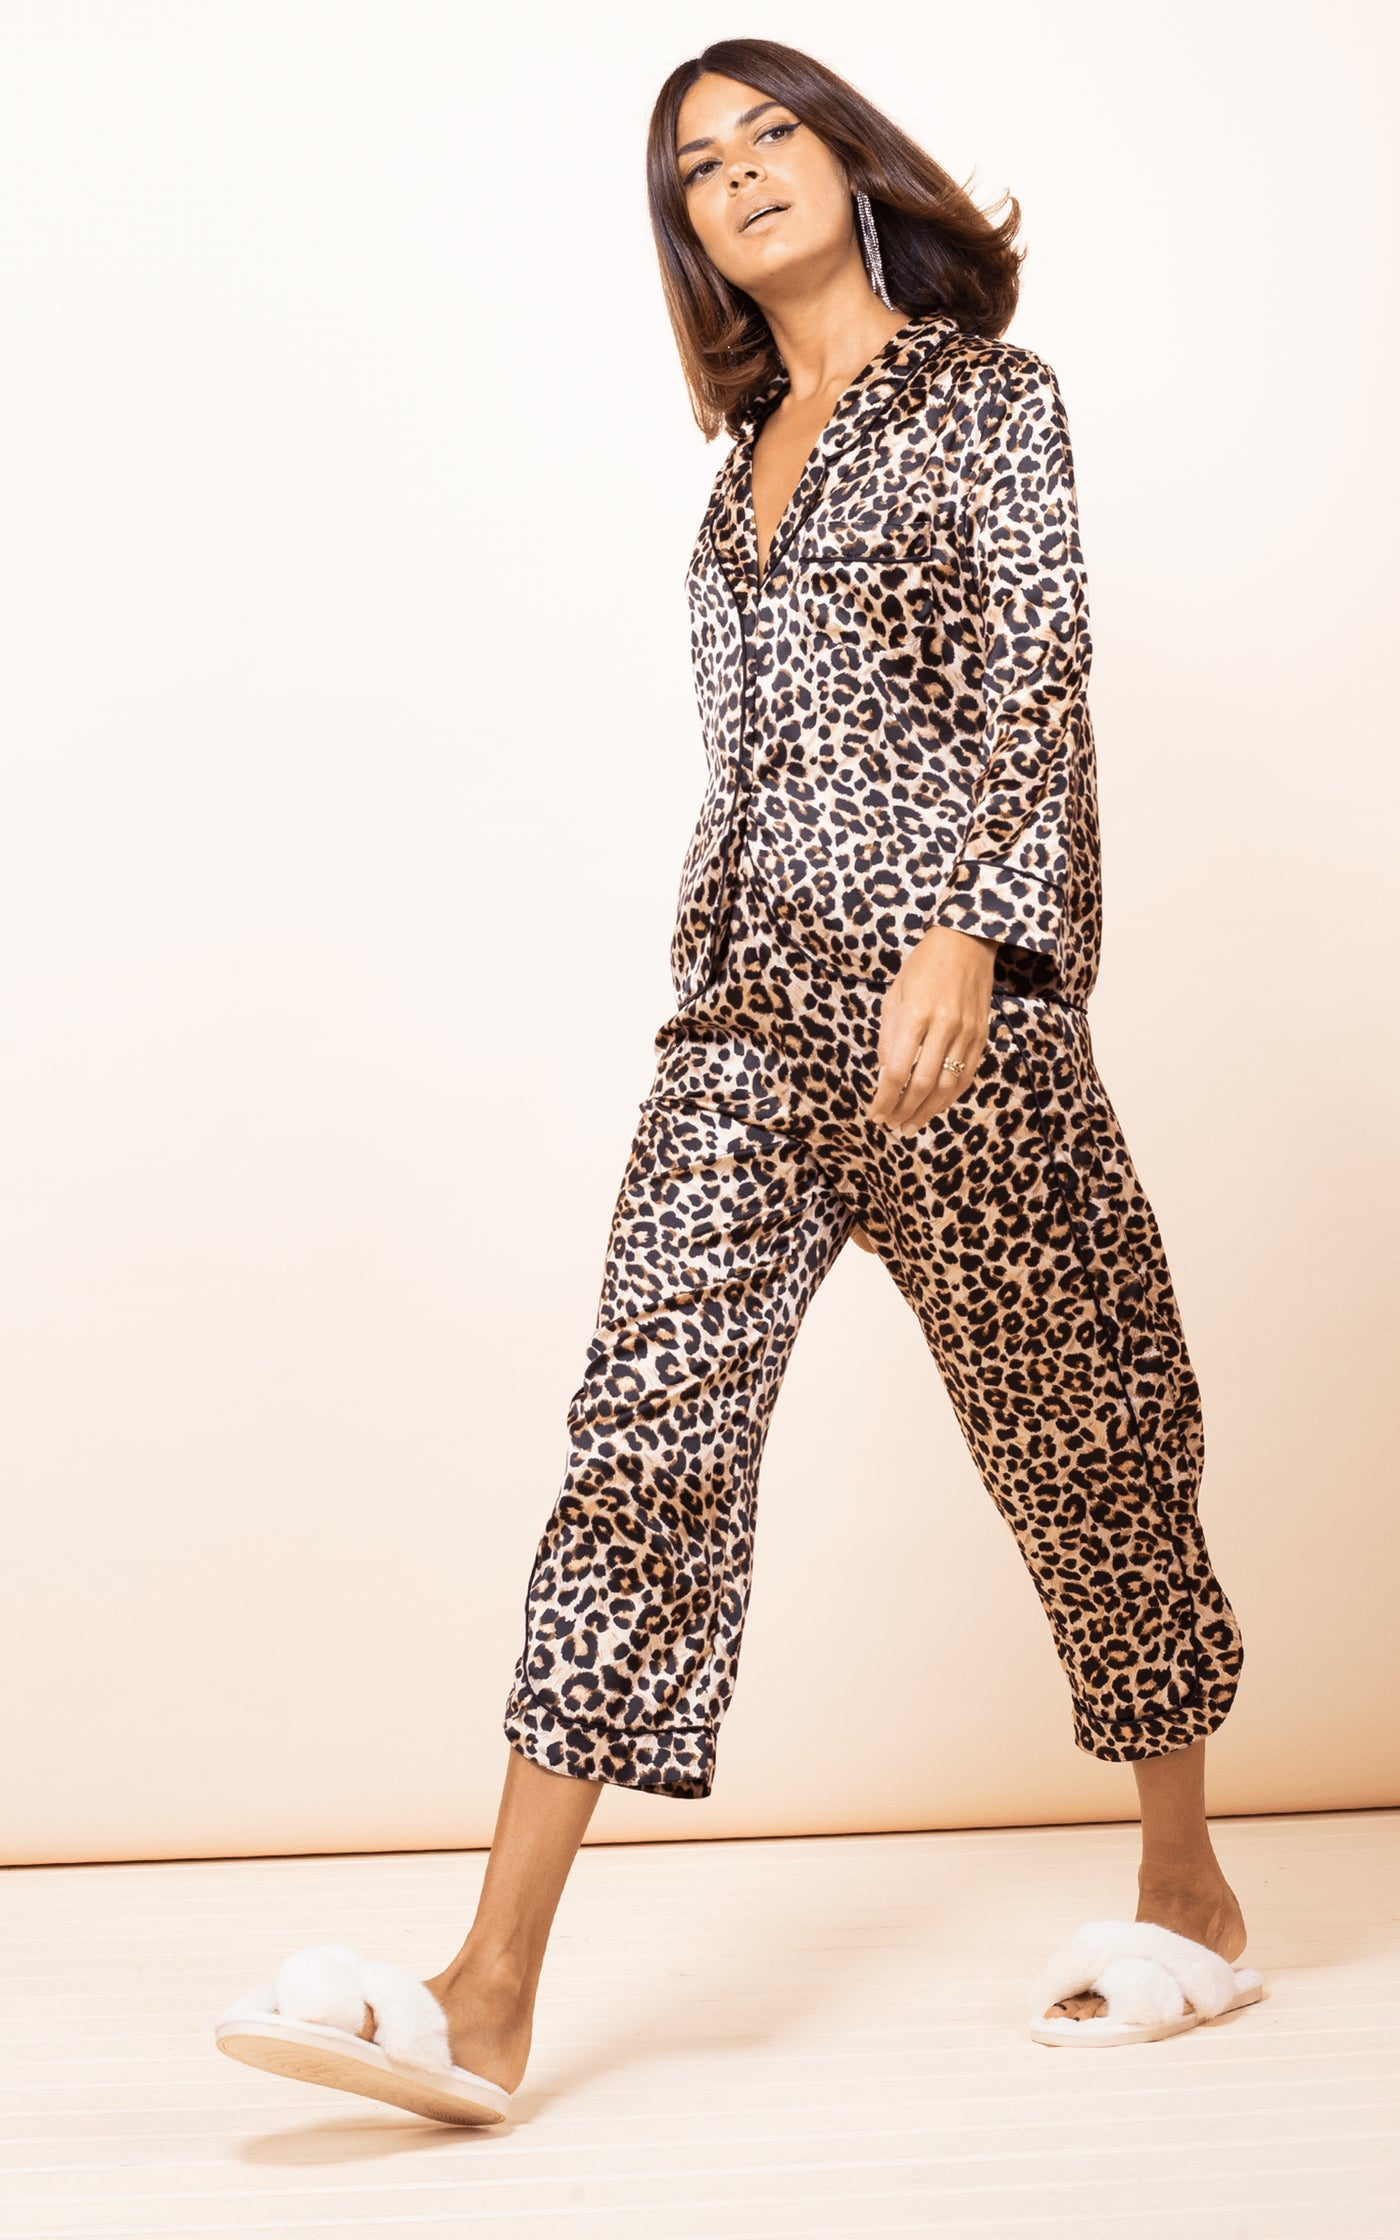 Dancing Leopard model strides forward wearing Enya PJ Set in Rich Leopard print and slippers